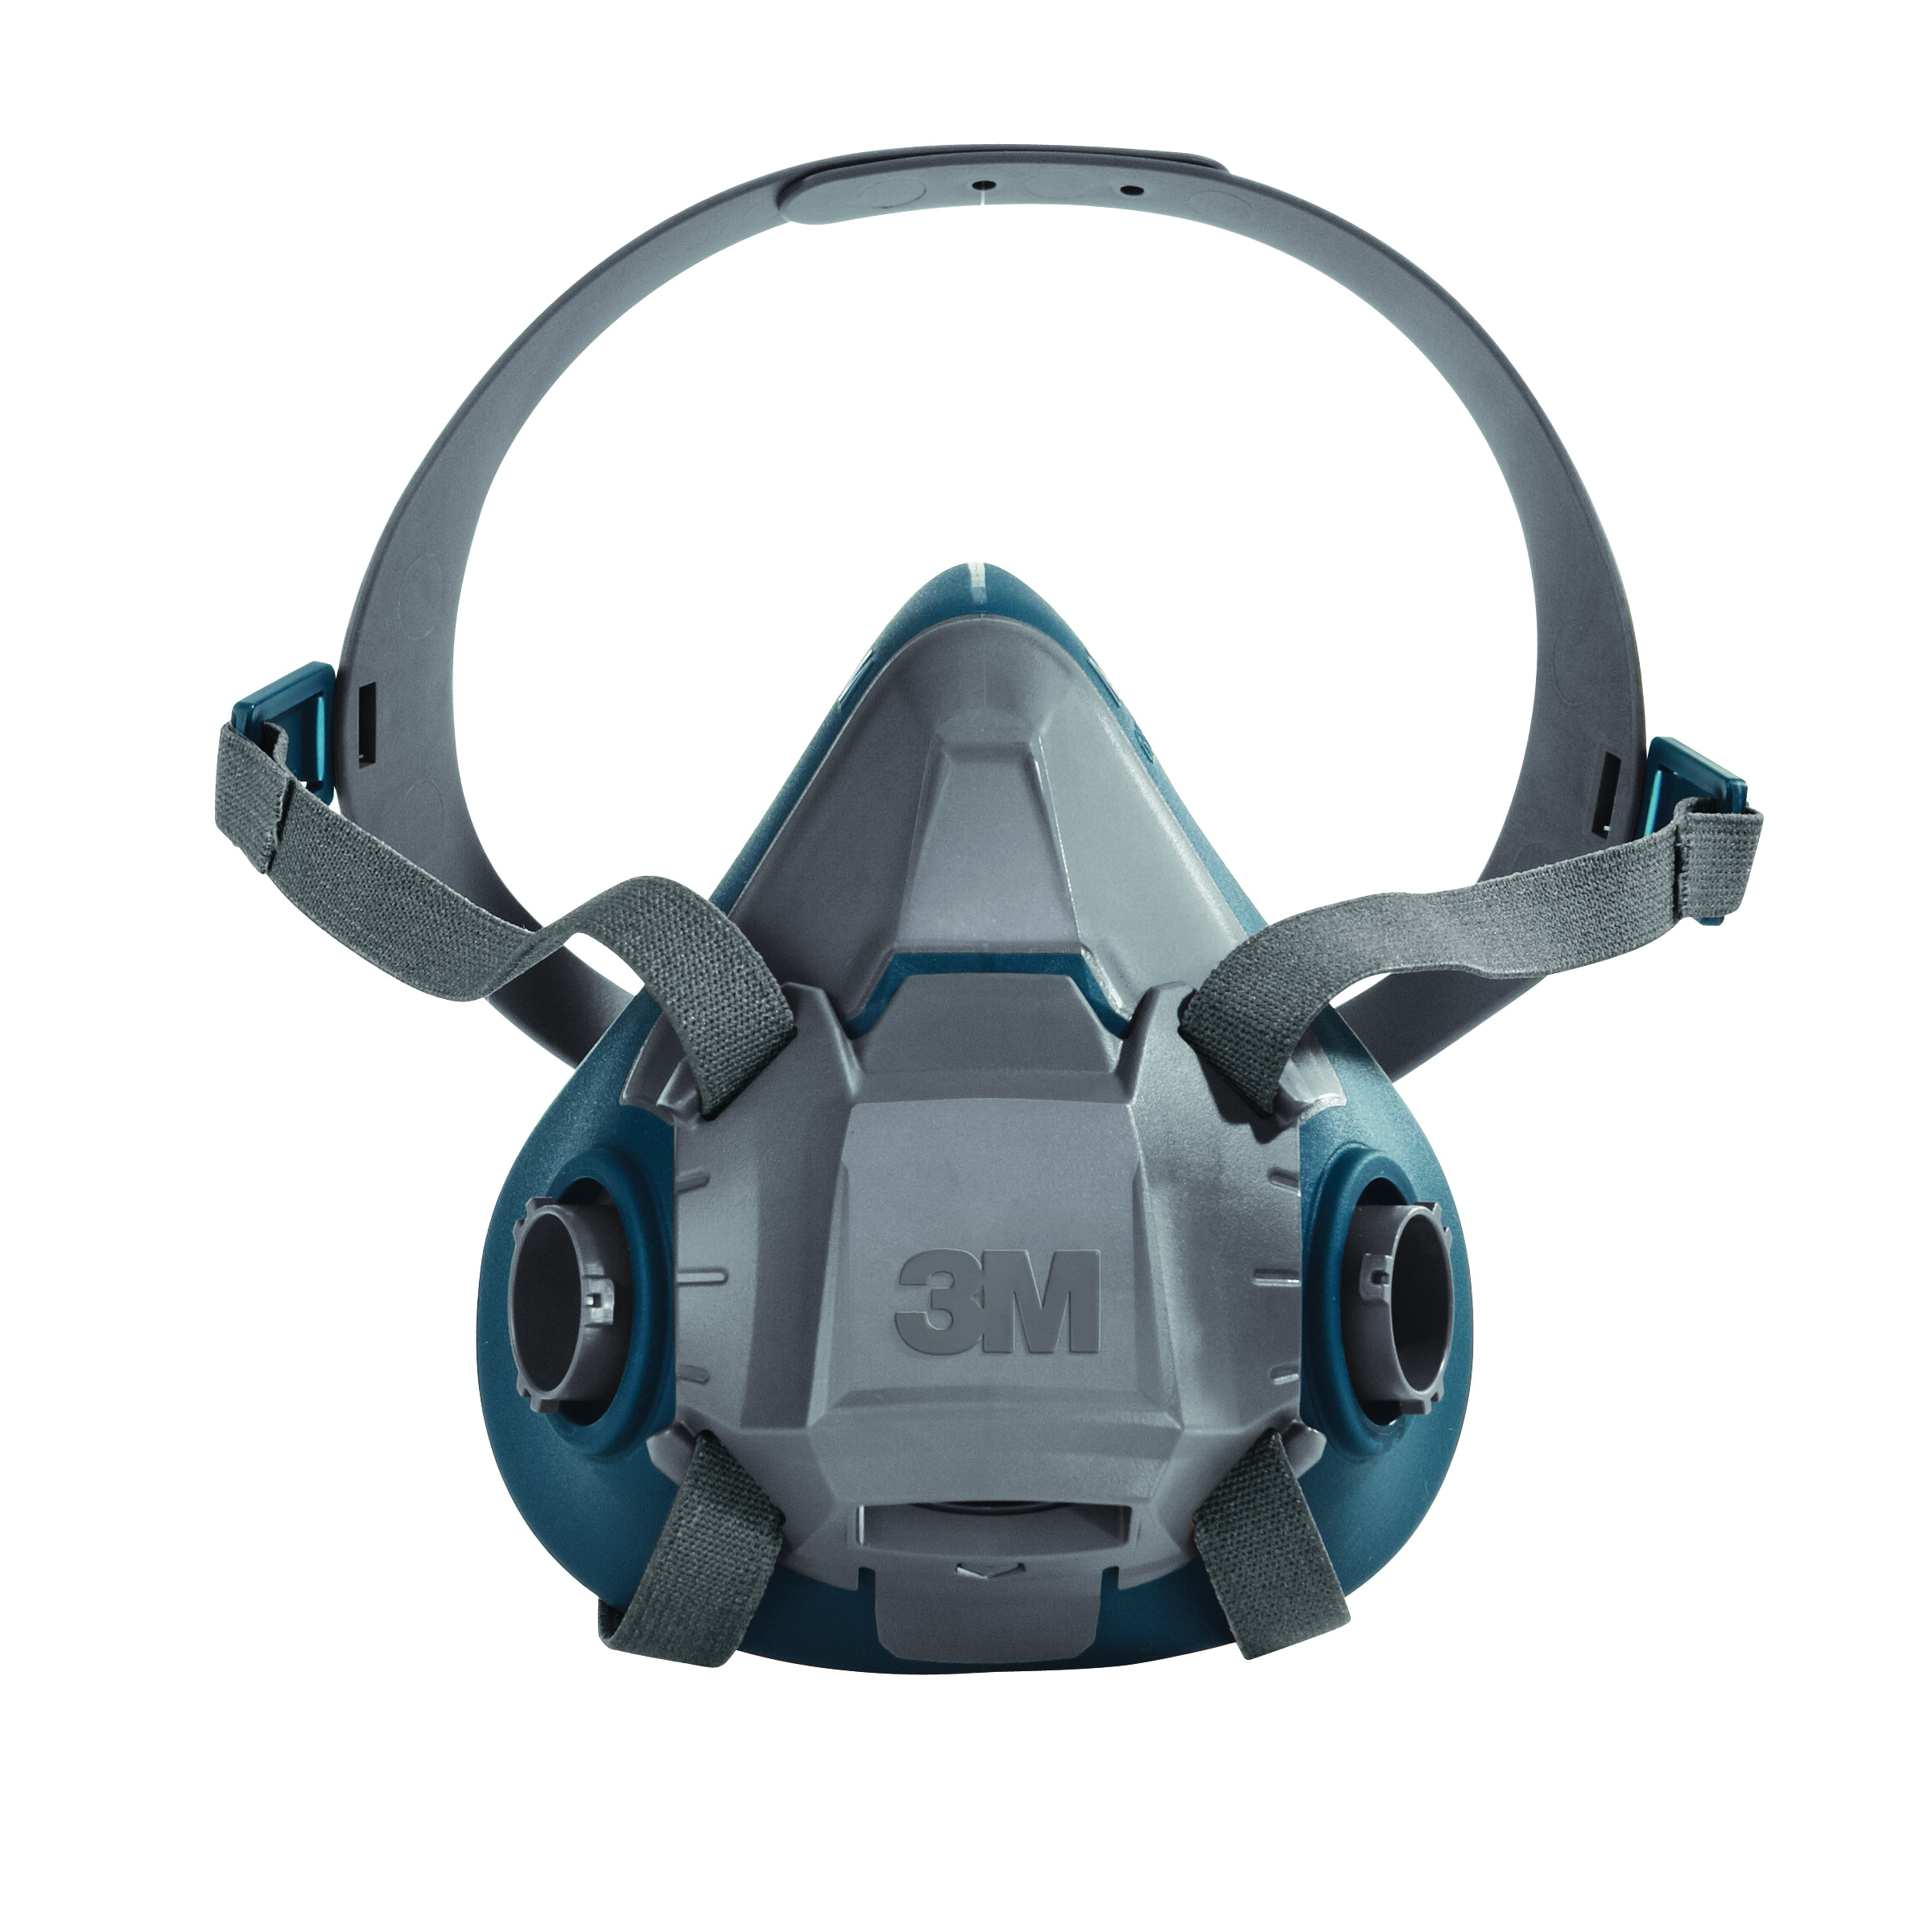 3M™ 051131-49489 Probed Reusable Half Facepiece Respirator, M, 4-Point Suspension, Bayonet Connection, Resists: Gases and Vapors